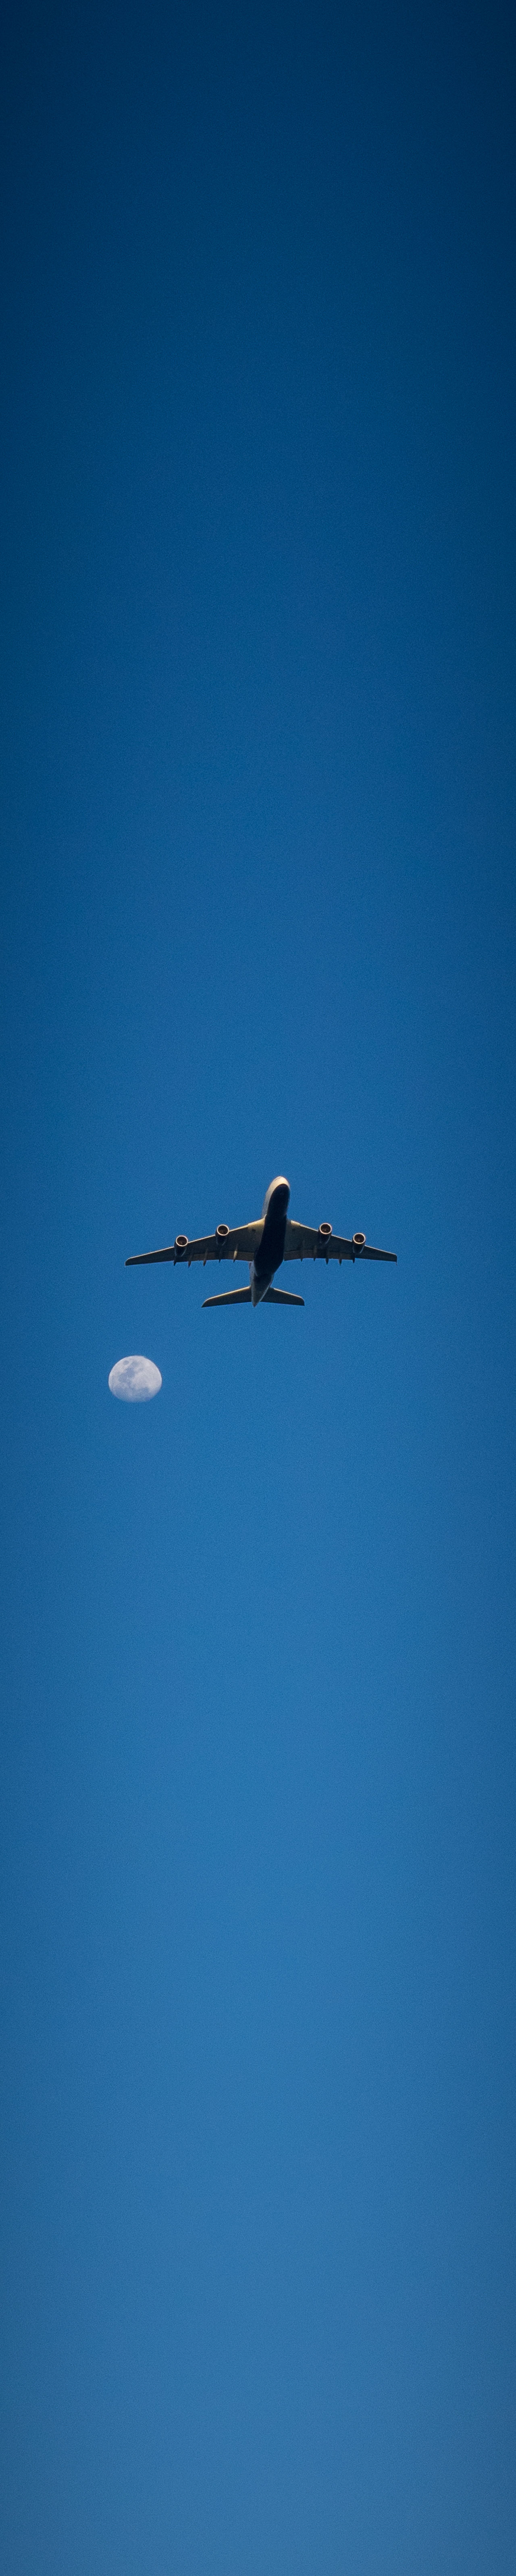 Fly me to the Moon Air Airplane Blue Clear Sky Day Fly Me To The Moon Flying Low Angle View Moon Moonlight Plane Sky Transportation Wings